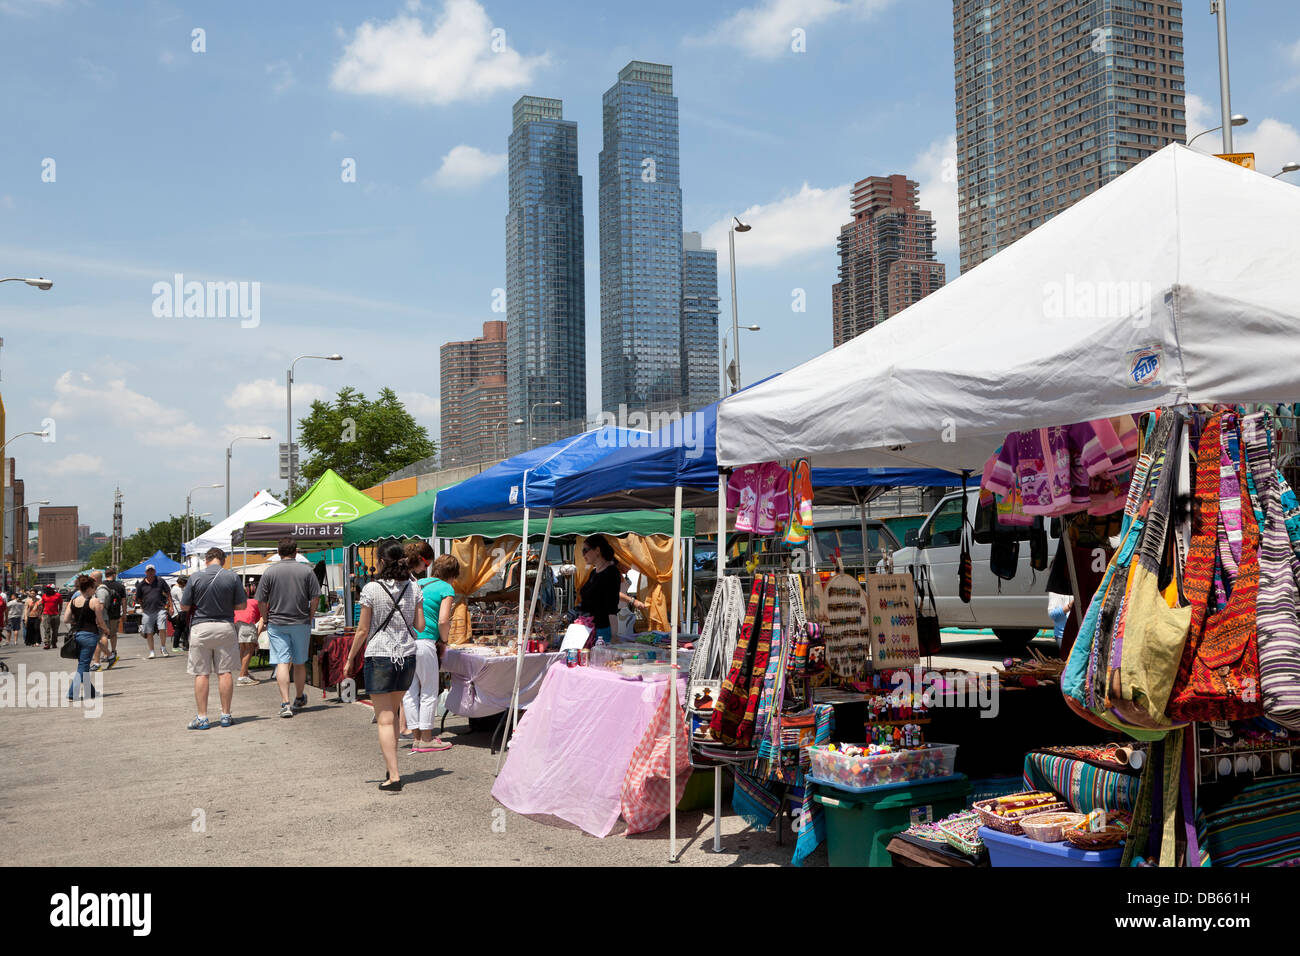 Flea market in Hell's Kitchen, NYC, New York City - Stock Image